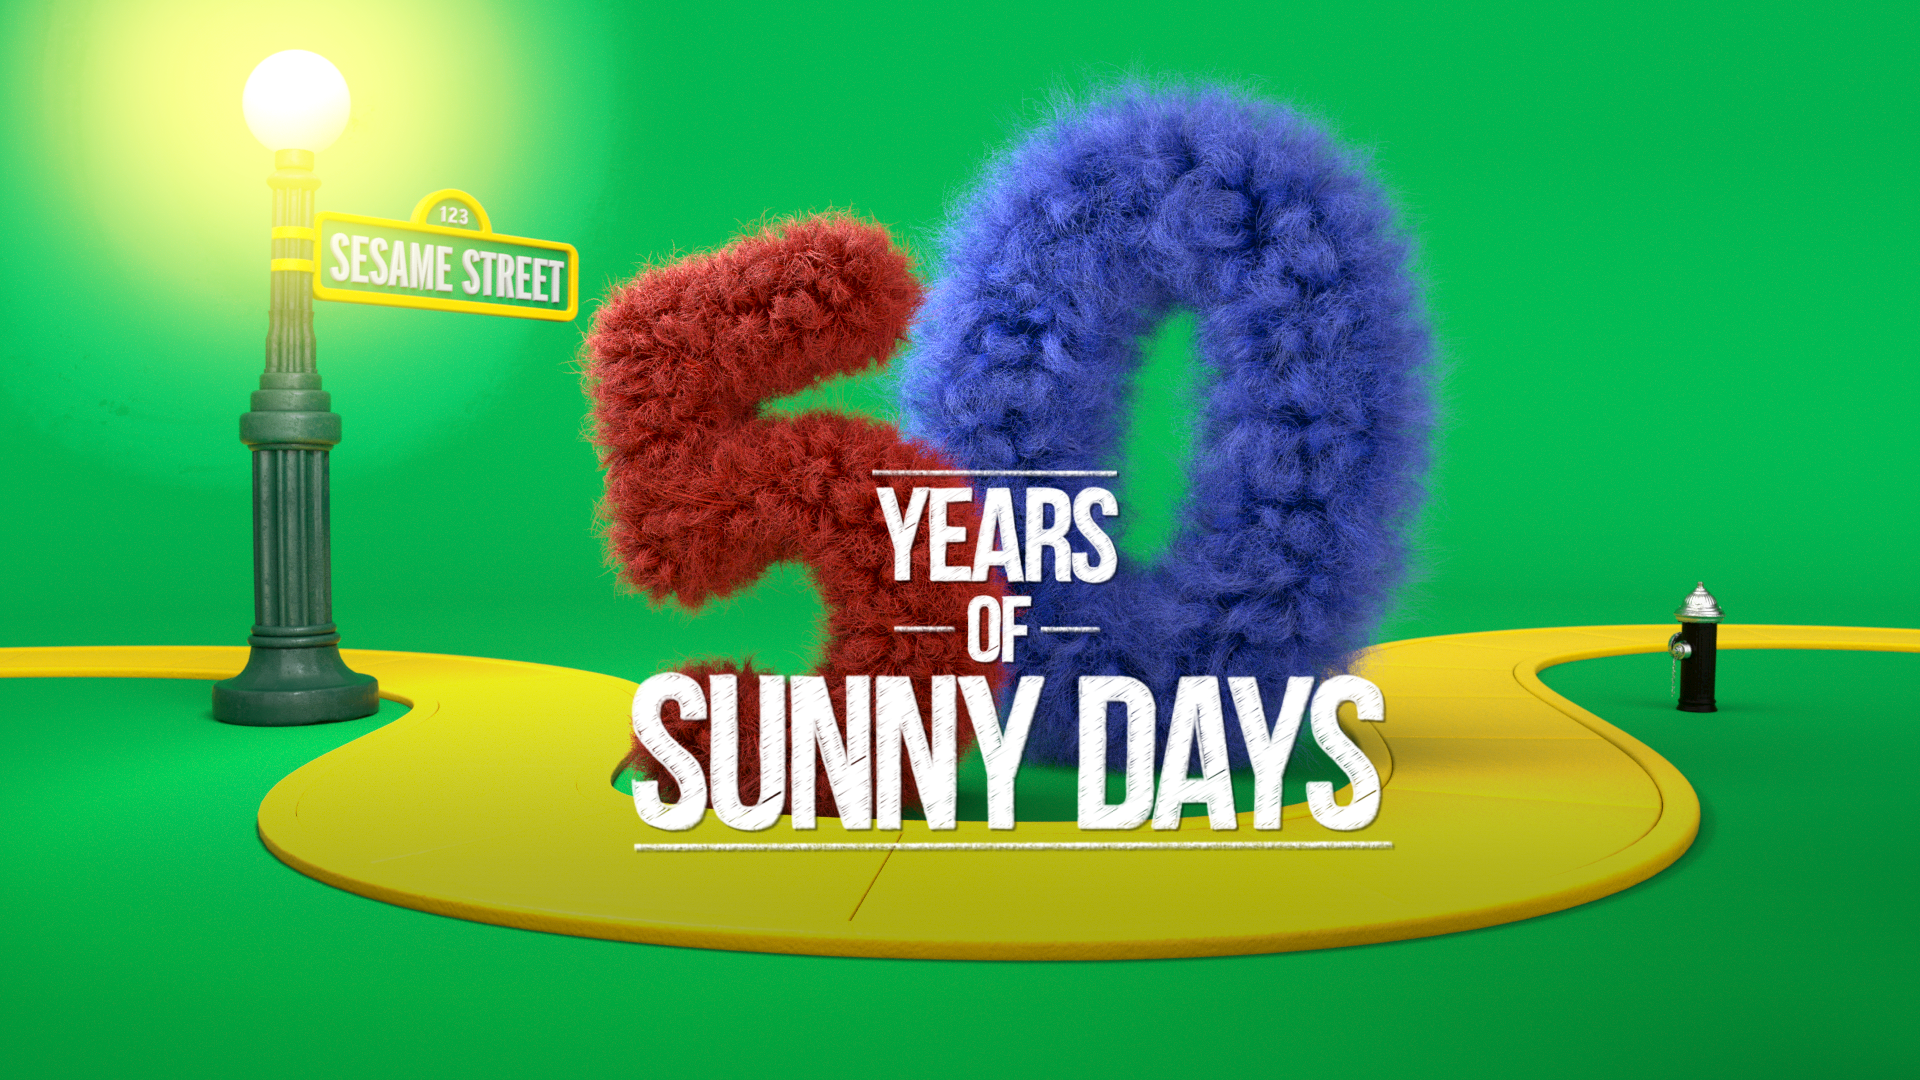 First Lady Jill Biden, Unhcr Special Envoy Angelina Jolie, John Oliver and Rosie Perez Join the Star-Studded Roster for ABC's 'Sesame Street: 50 Years of Sunny Days,' Produced by Time Studios, Airing Monday, April 26, at 8|7C